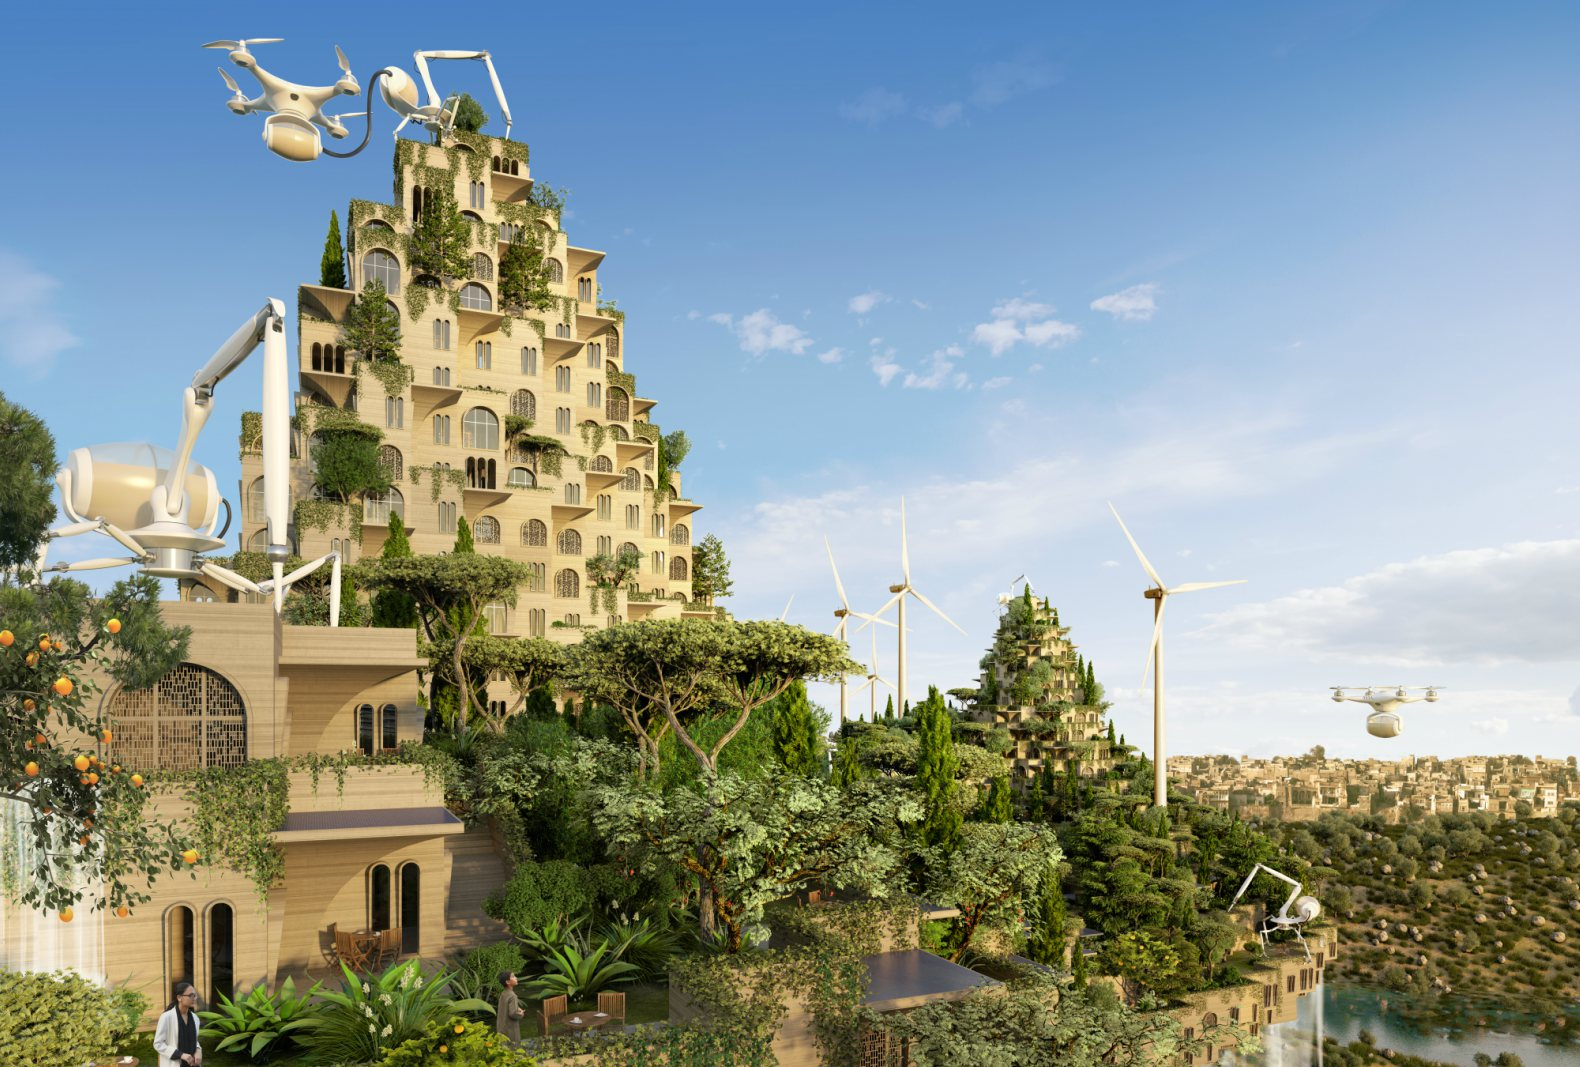 Five Bridges Topped With Urban Farms Could Revitalize War